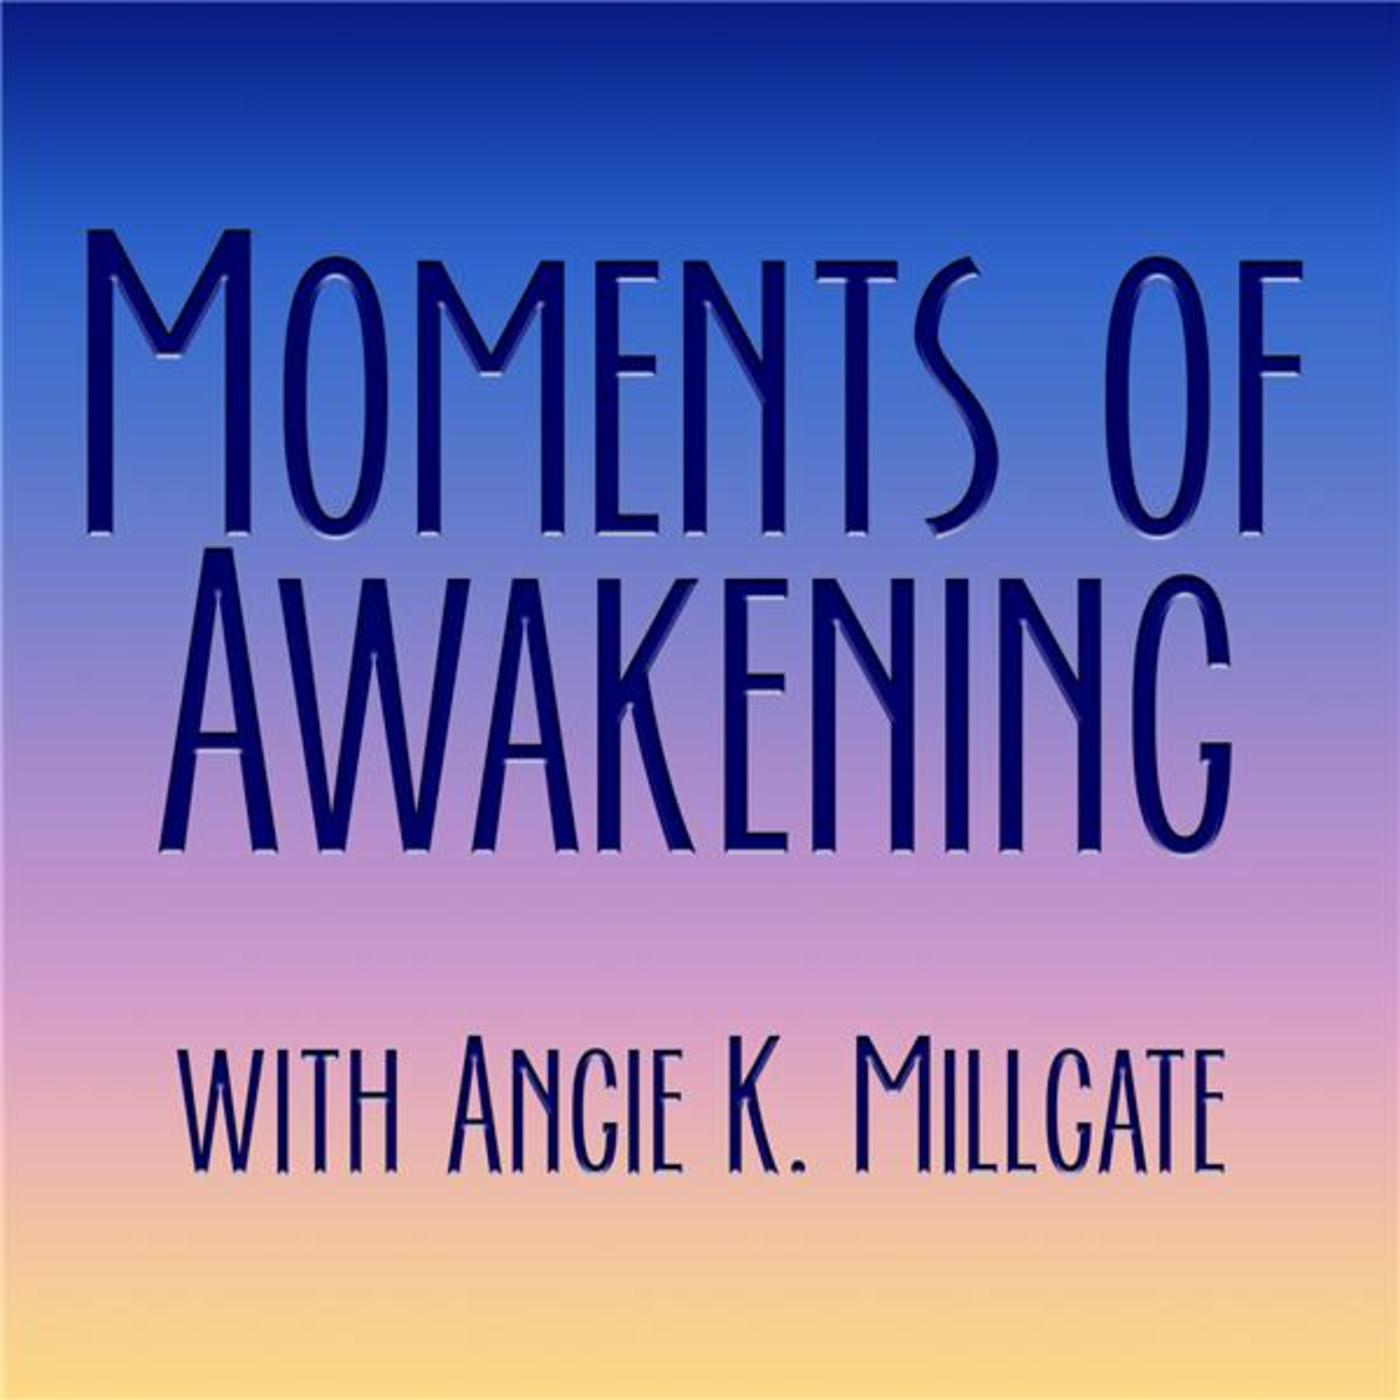 Moments of Awakening